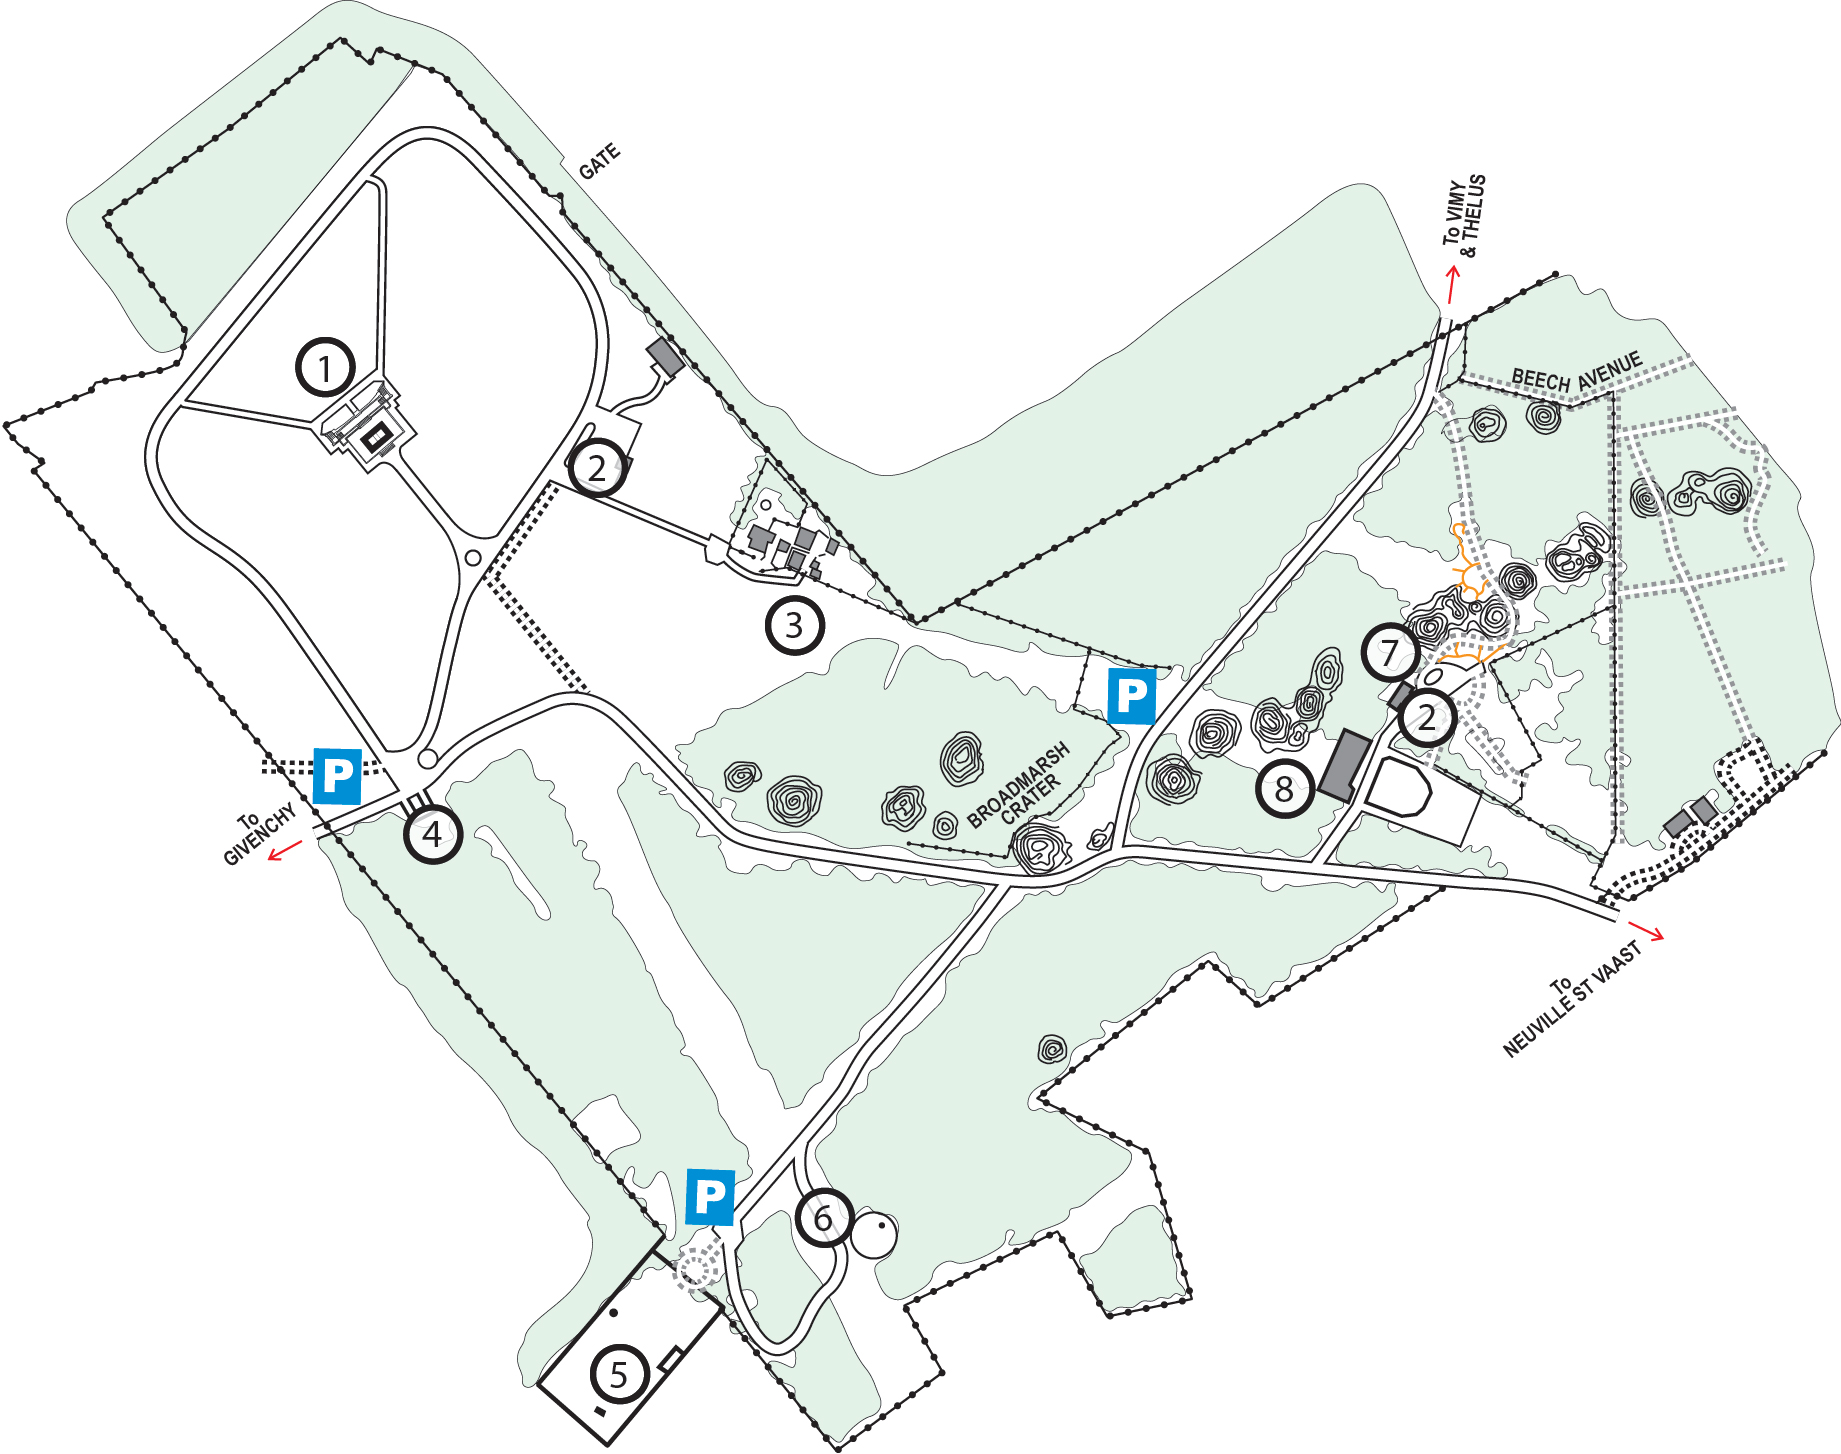 Map of the Canadian National Vimy Memorial site, showing points of interest.  Legend details in text following the image.